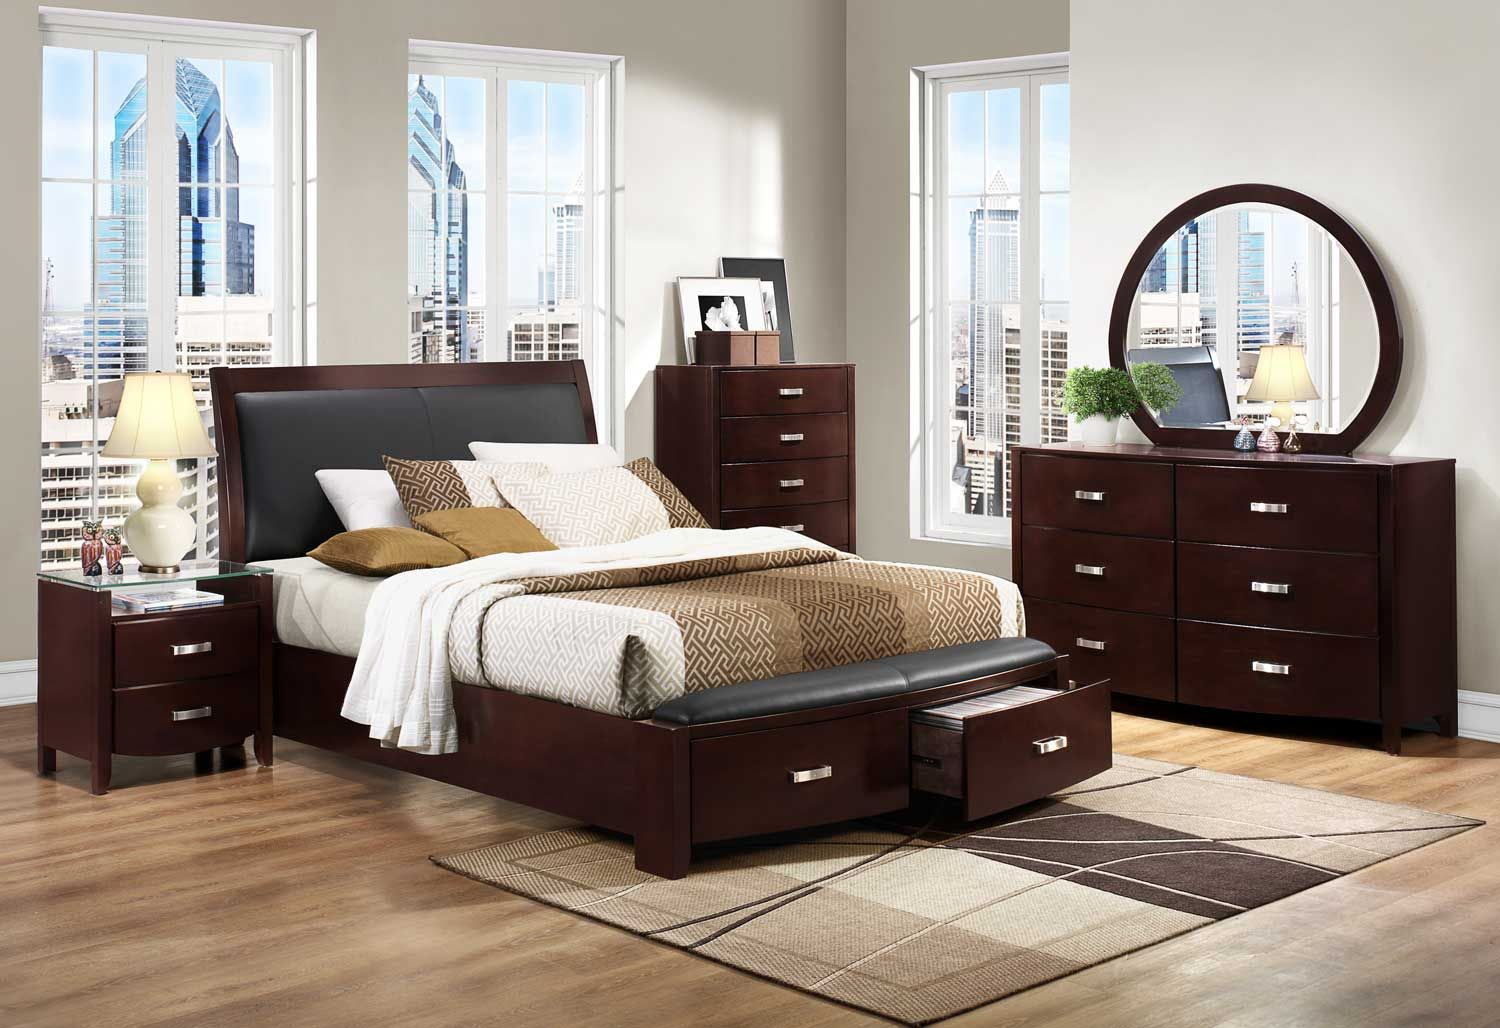 Bedroom Furniture Espresso homelegance lyric platform bedroom set - dark espresso $1,931.00